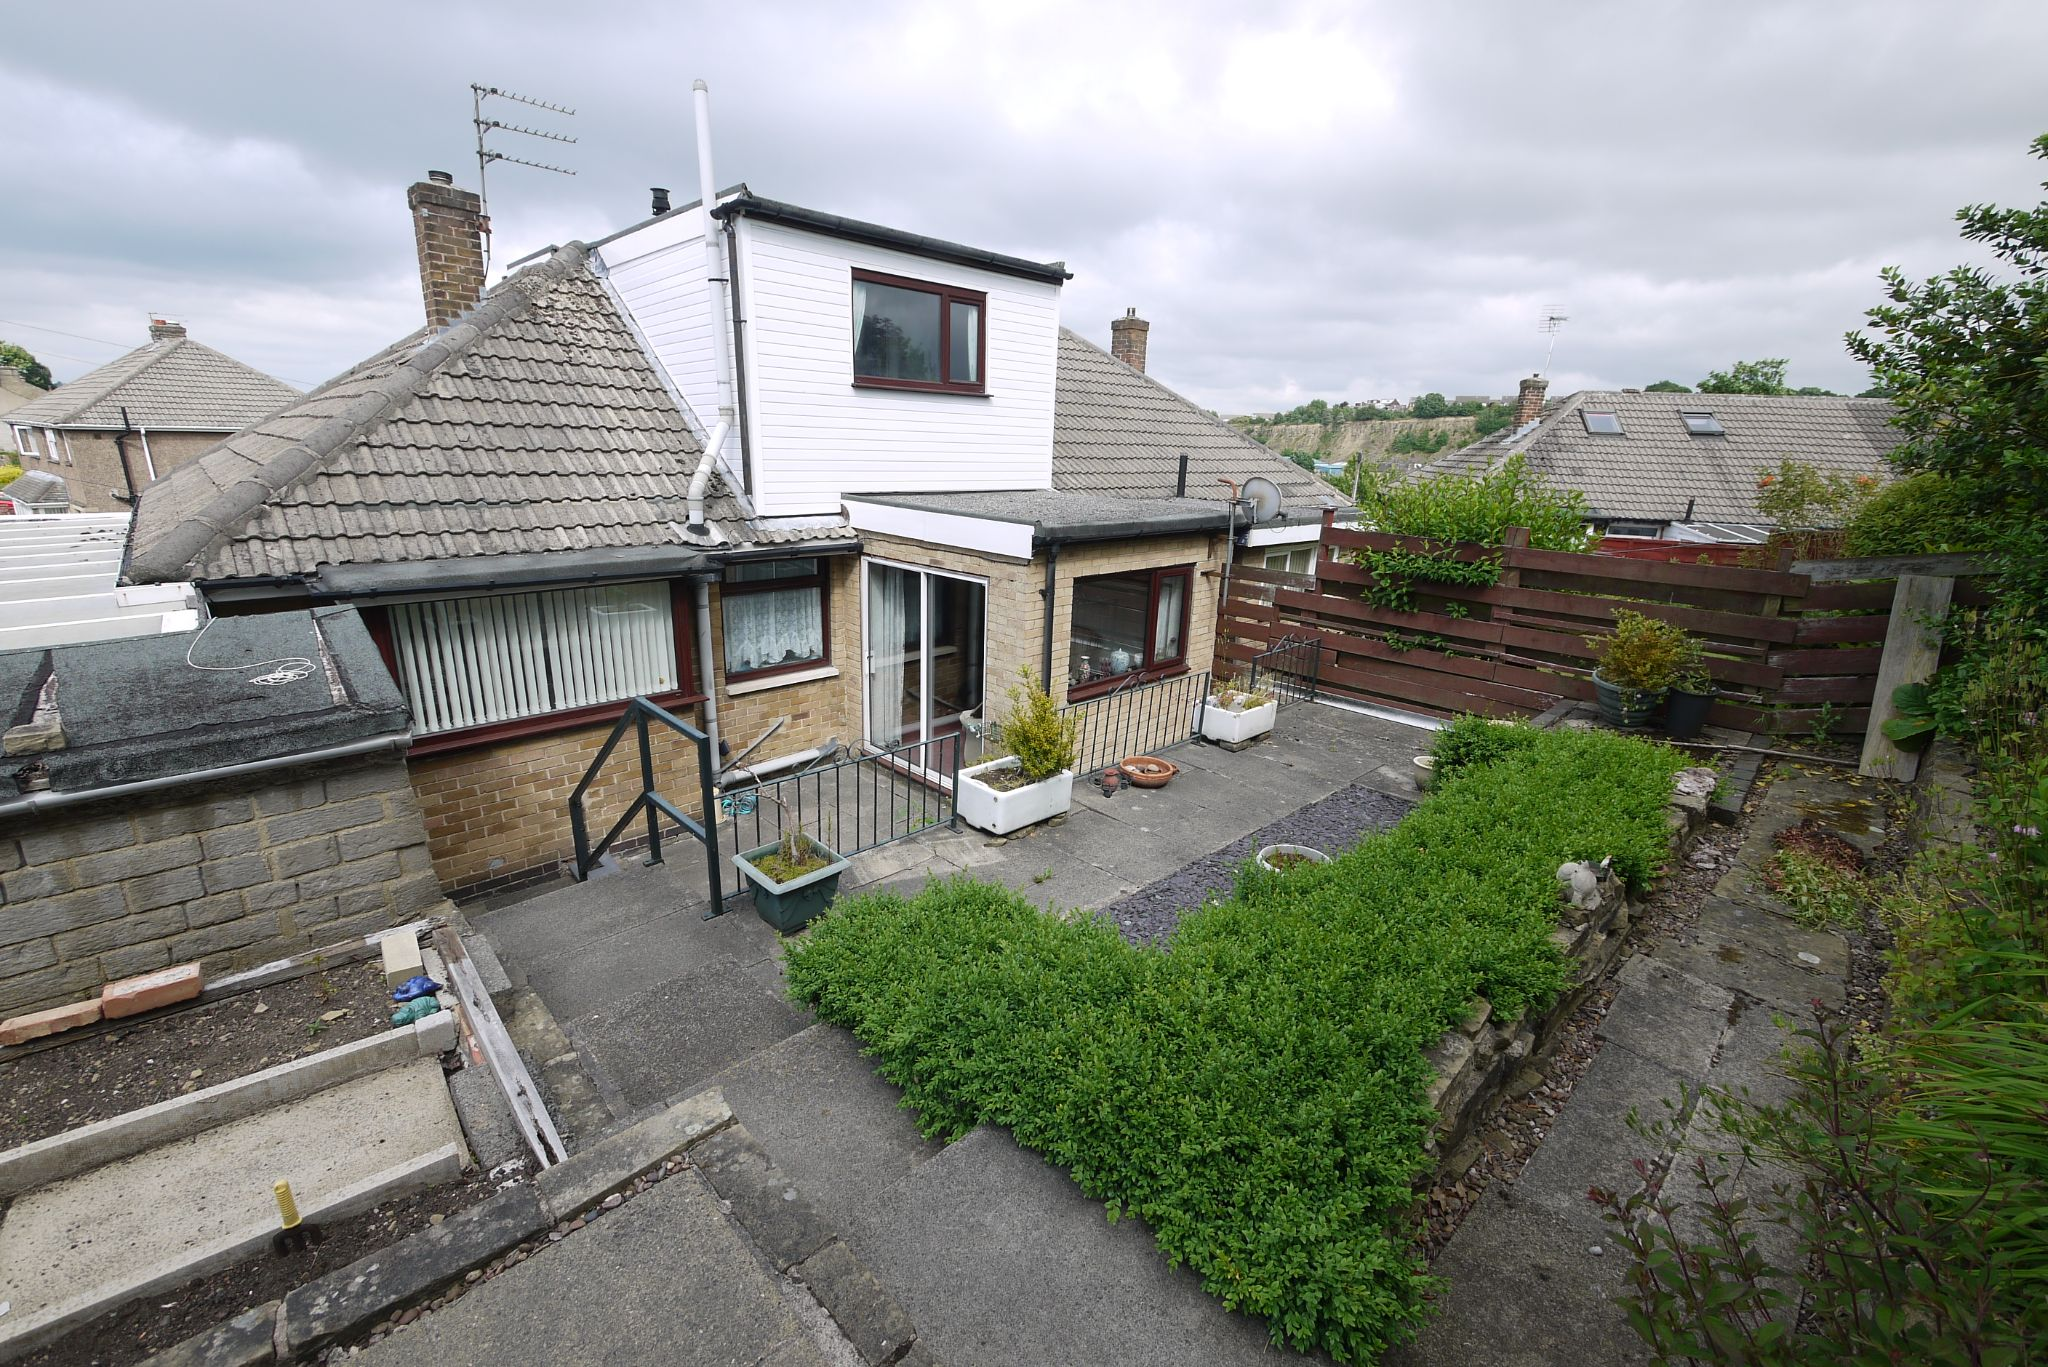 3 bedroom semi-detached bungalow SSTC in Brighouse - Photograph 12.